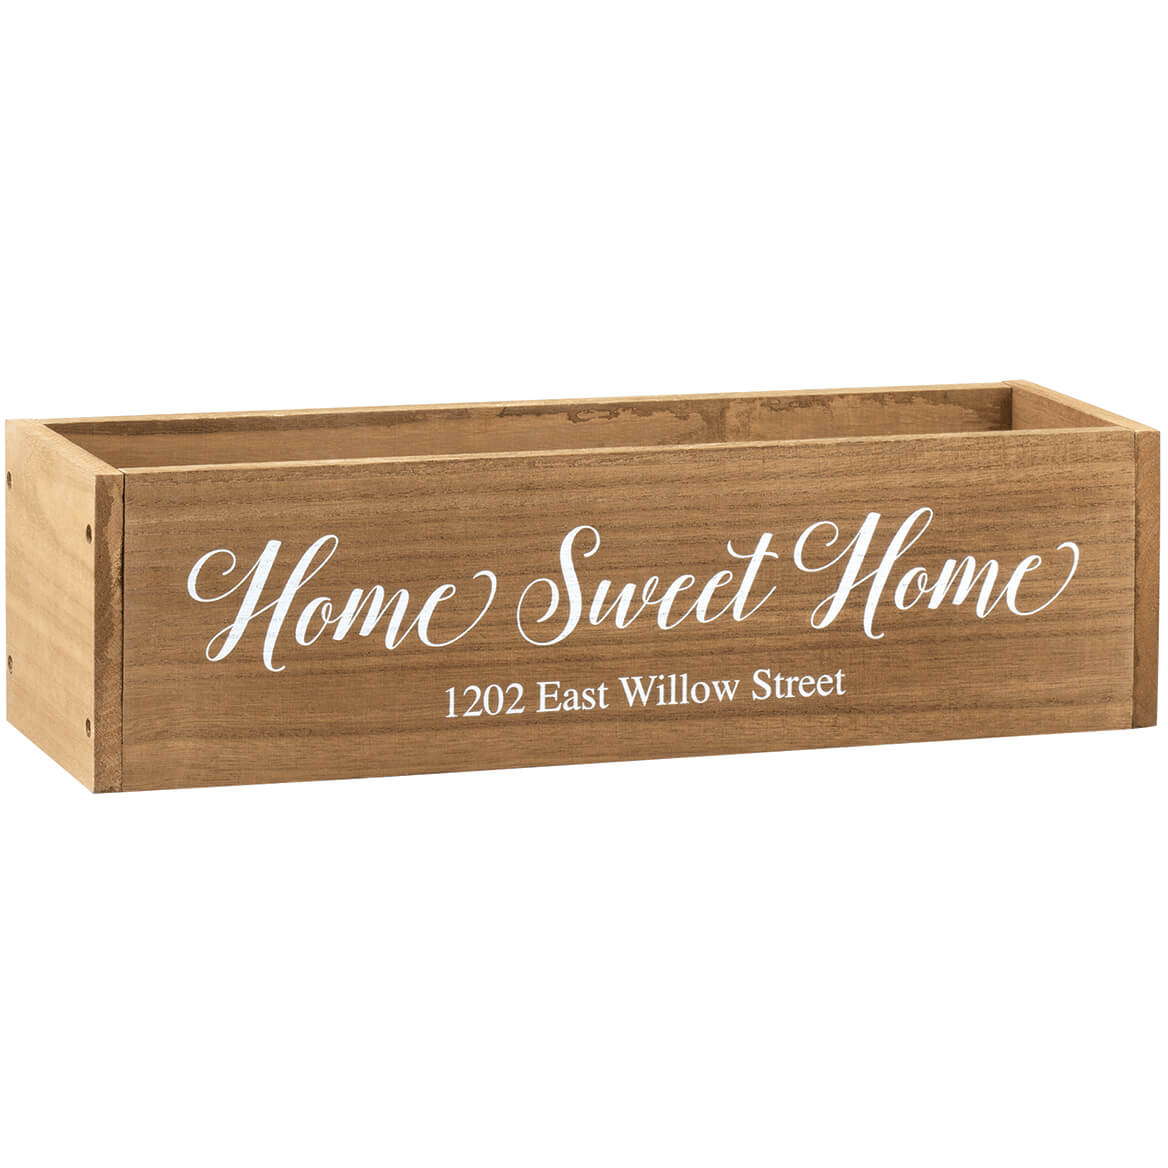 Personalized Wooden Planter Box, Home Sweet Home-369261